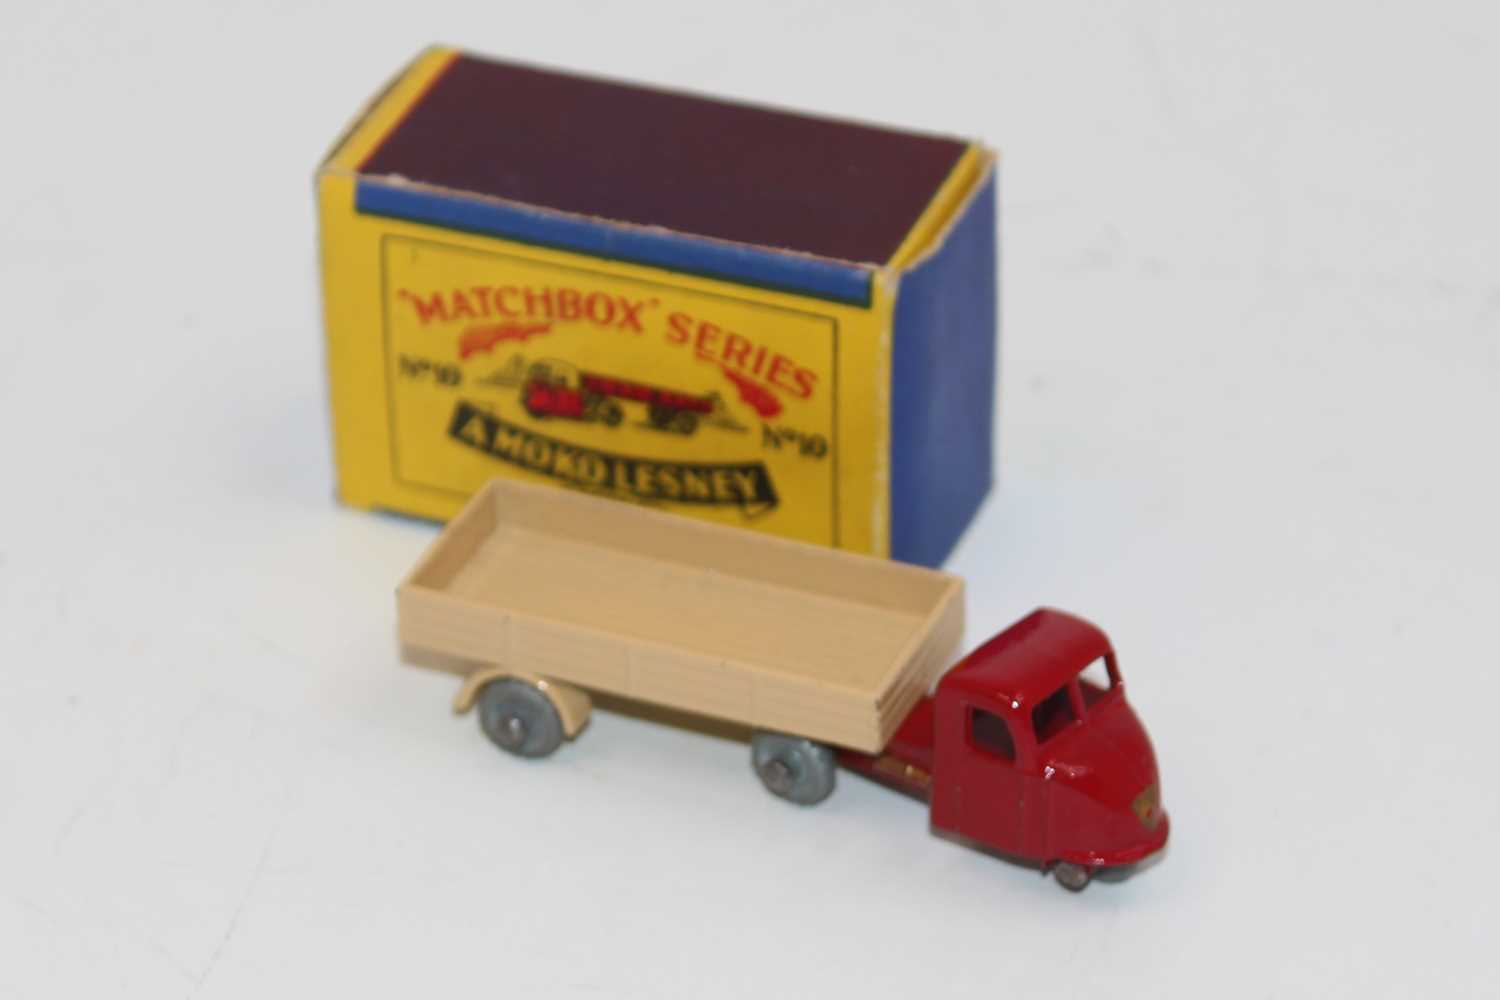 Matchbox Moko Lesney 10b Scammell Scarab Mechanical Horse & Trailer, dark red tractor unit, gold - Image 2 of 2